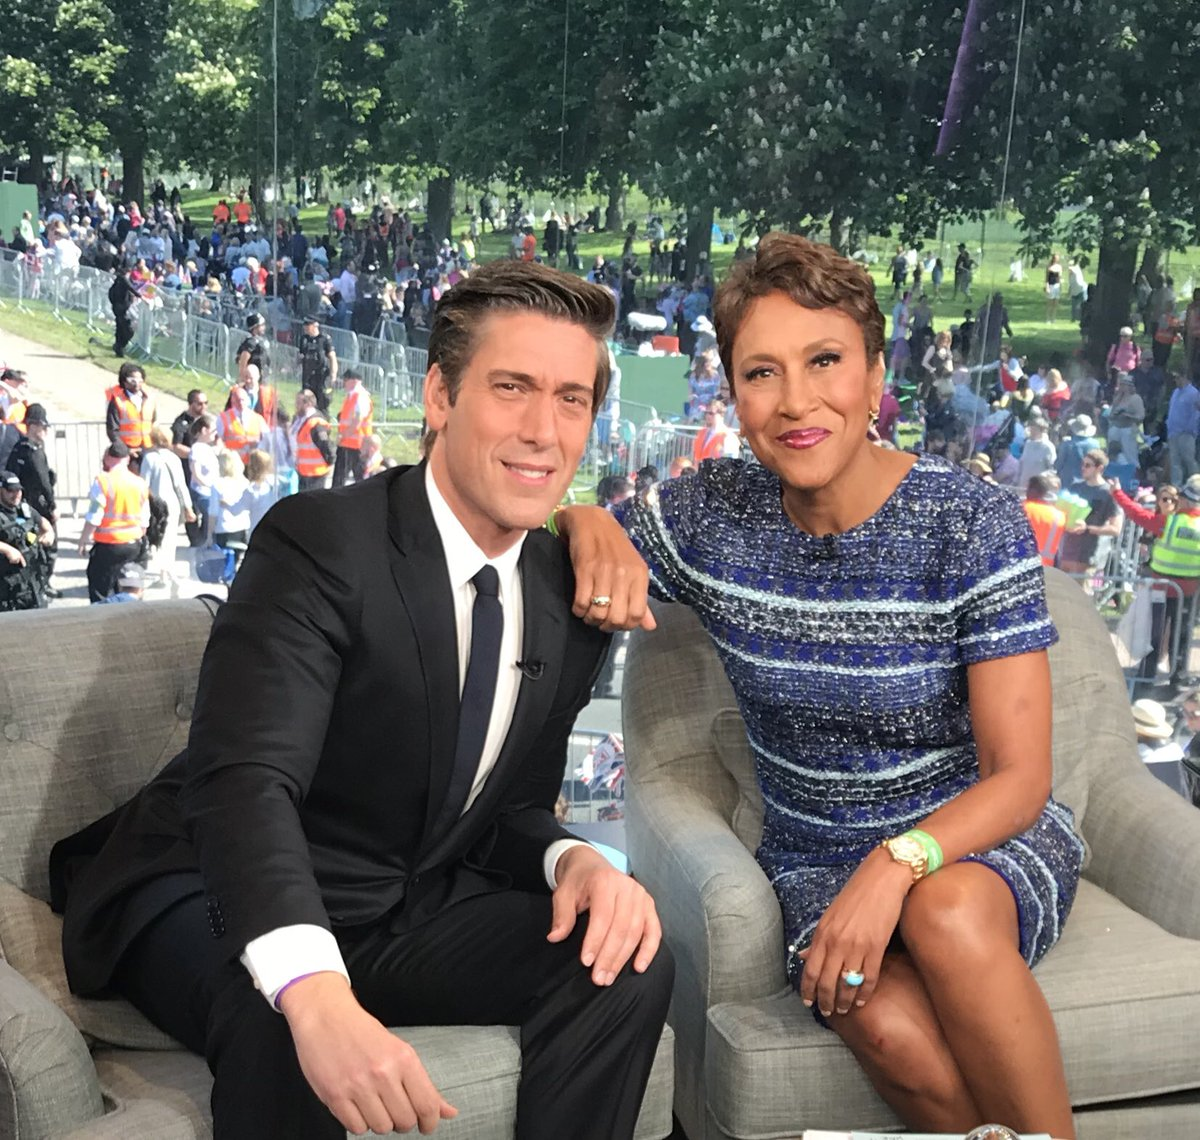 Robin Roberts On Twitter The Day Is Finally Here Davidmuir And I Will Have Special Coverage Of Royalwedding All Morning Long Abc